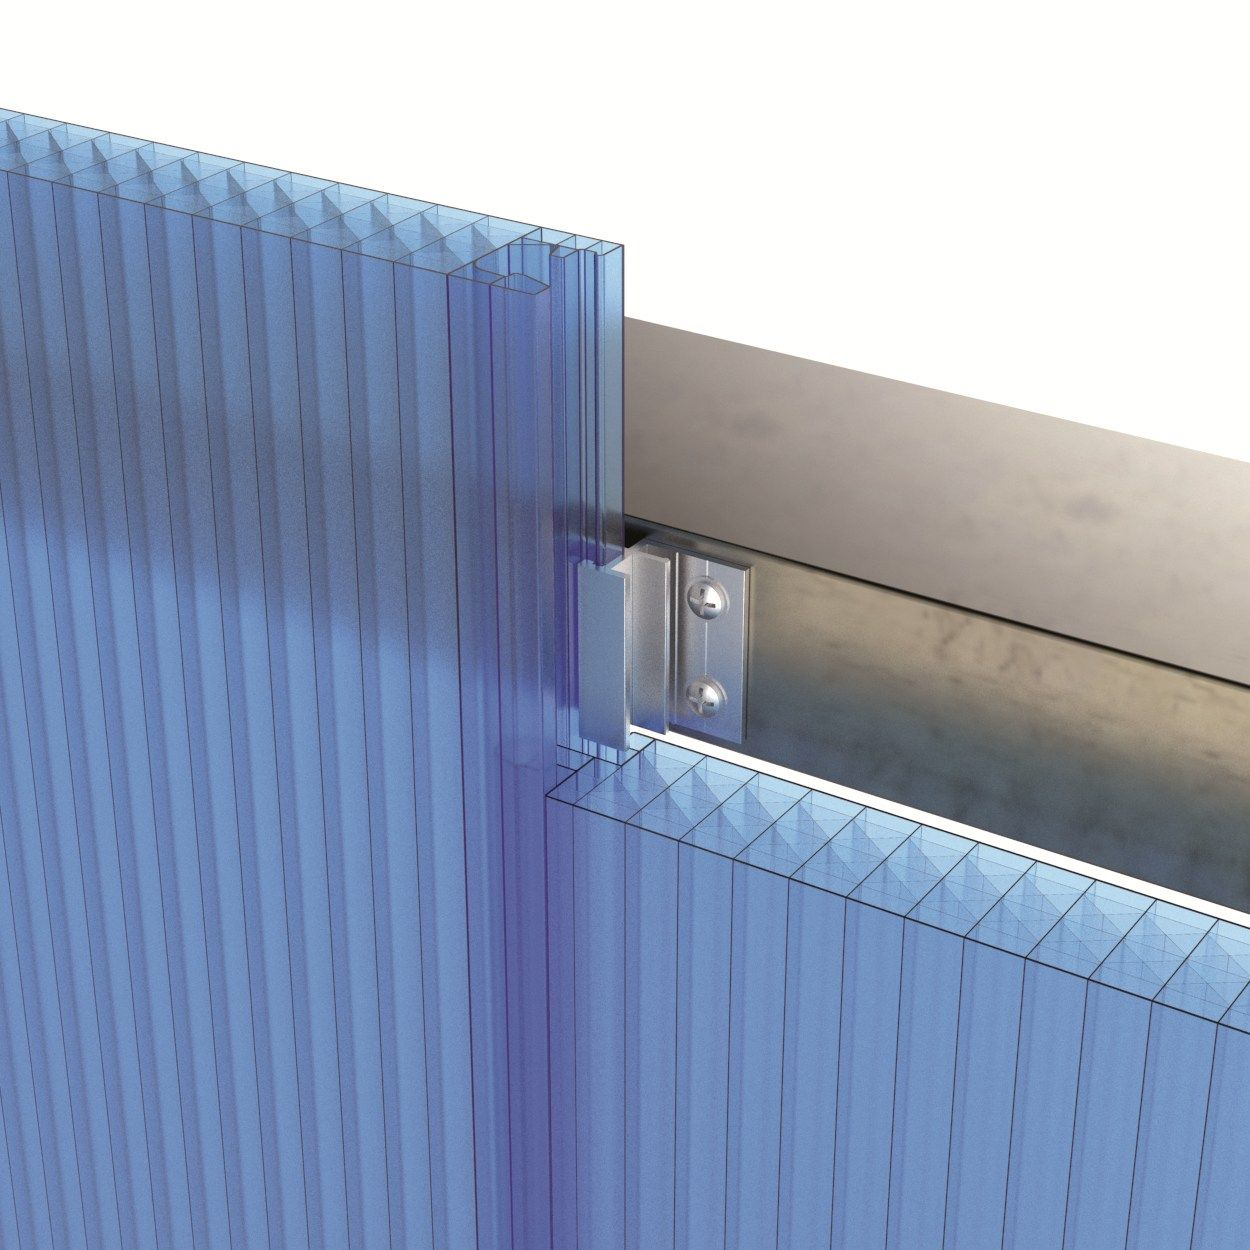 Translucent Resin Panel System : Interlocking polycarbonate system for traslucent facades